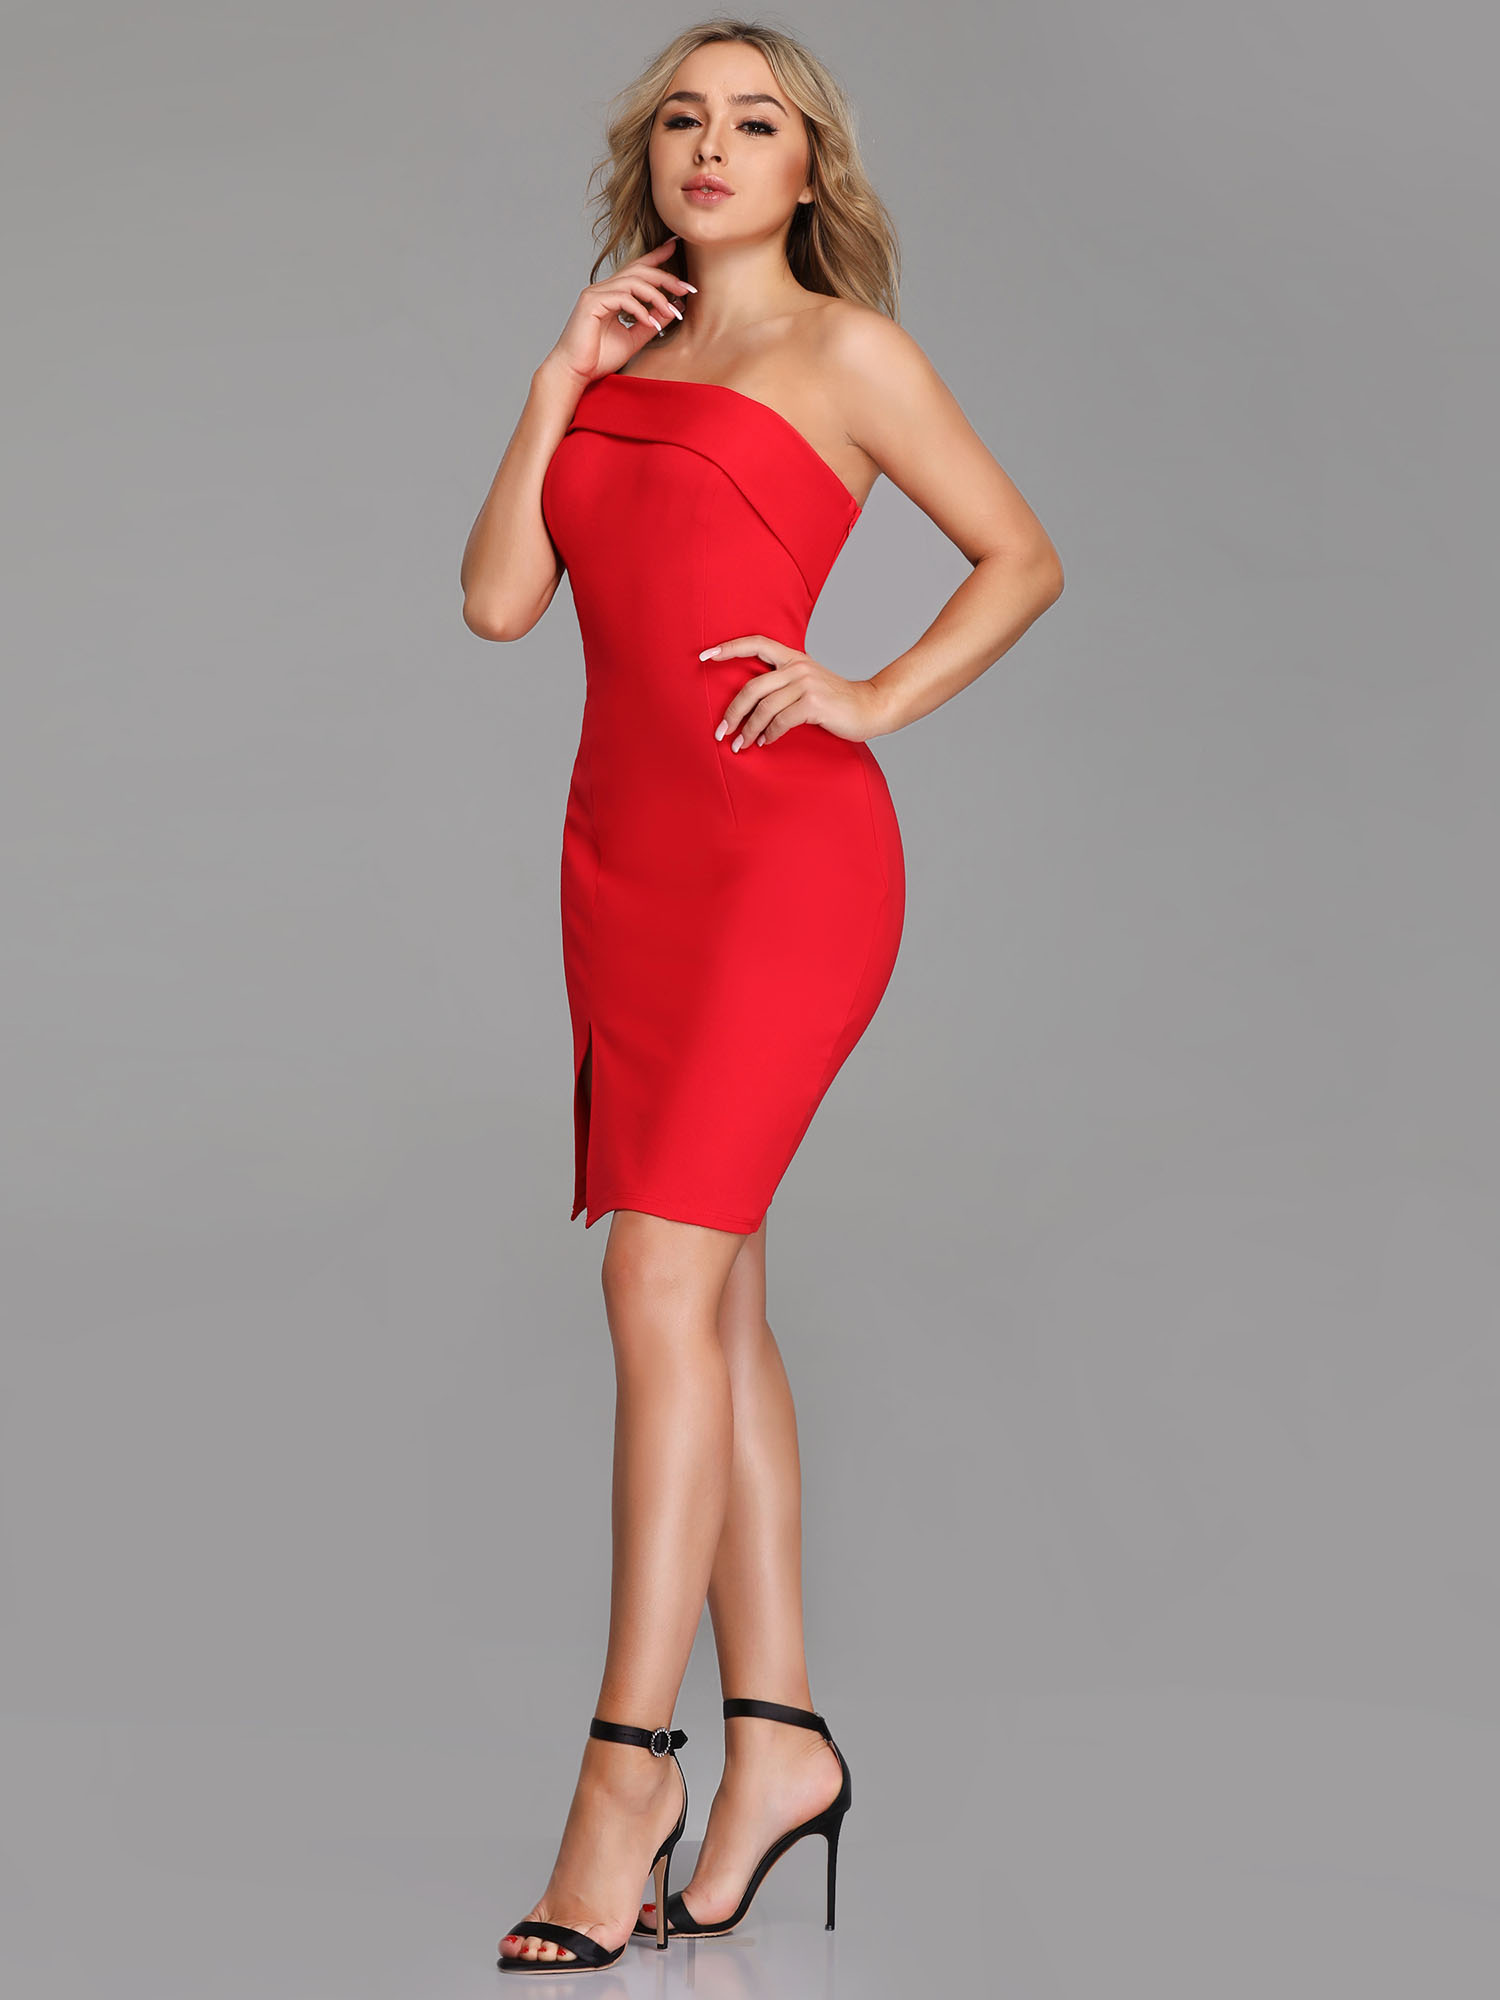 one-shoulder-petite-christmas-dresses